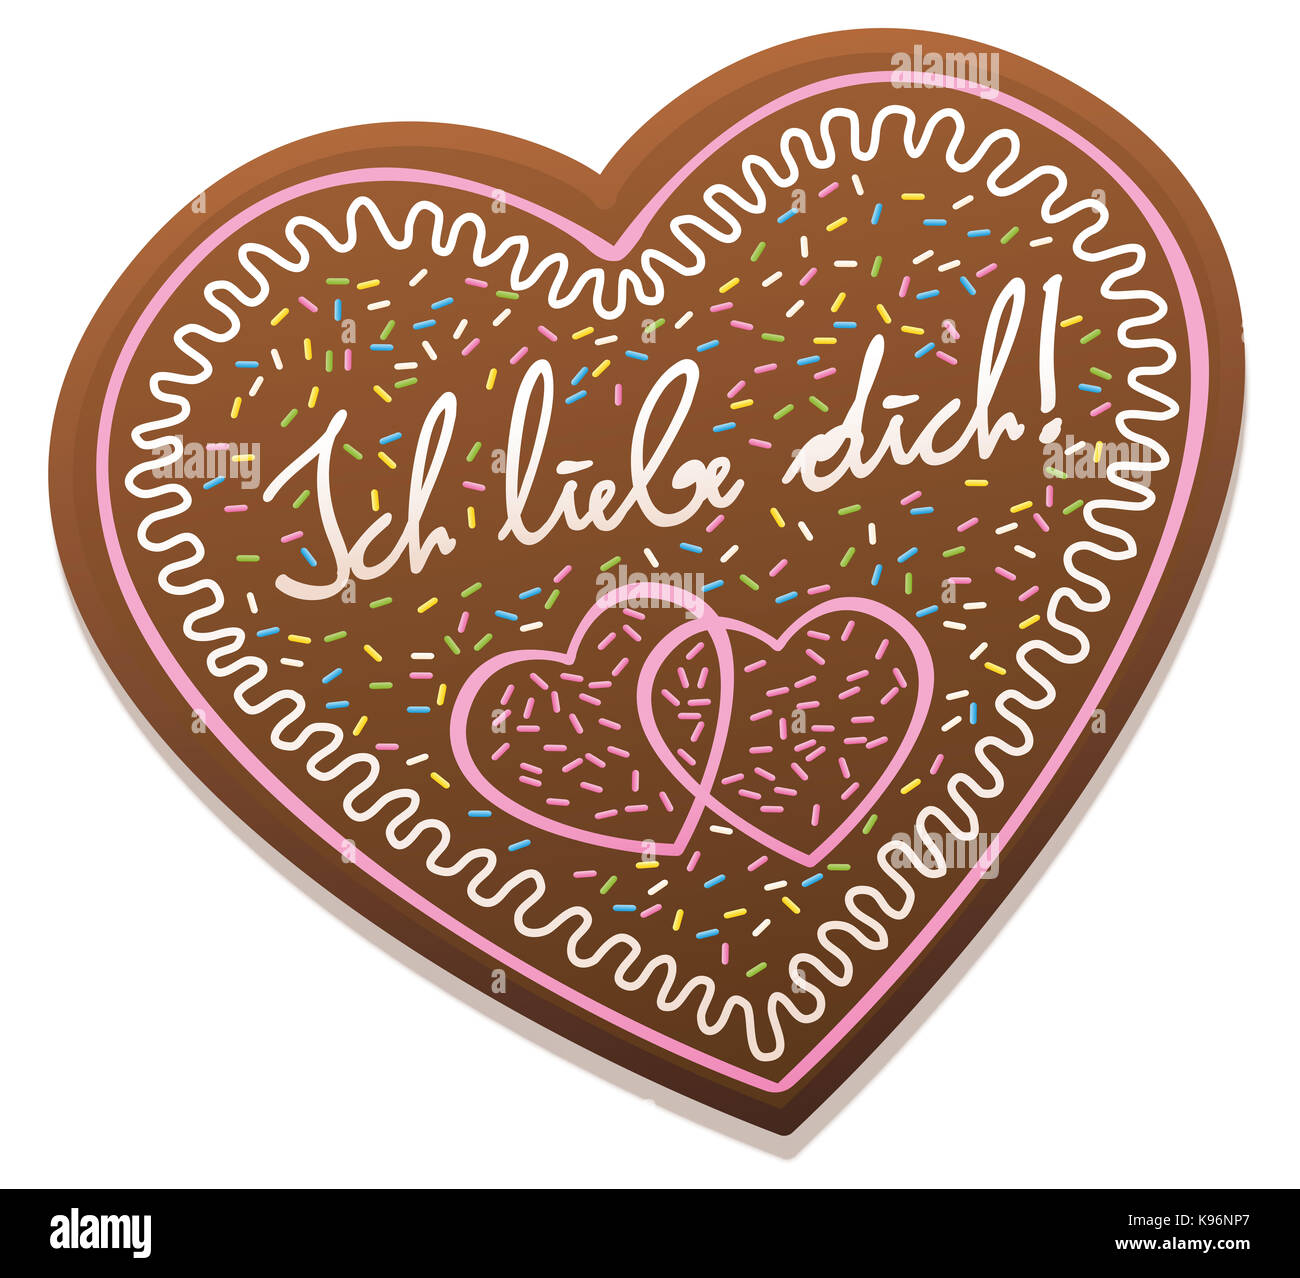 ICH LIEBE DICH - german for I love you - written on a typical bavarian gingerbread heart from original Oktoberfest - Stock Image